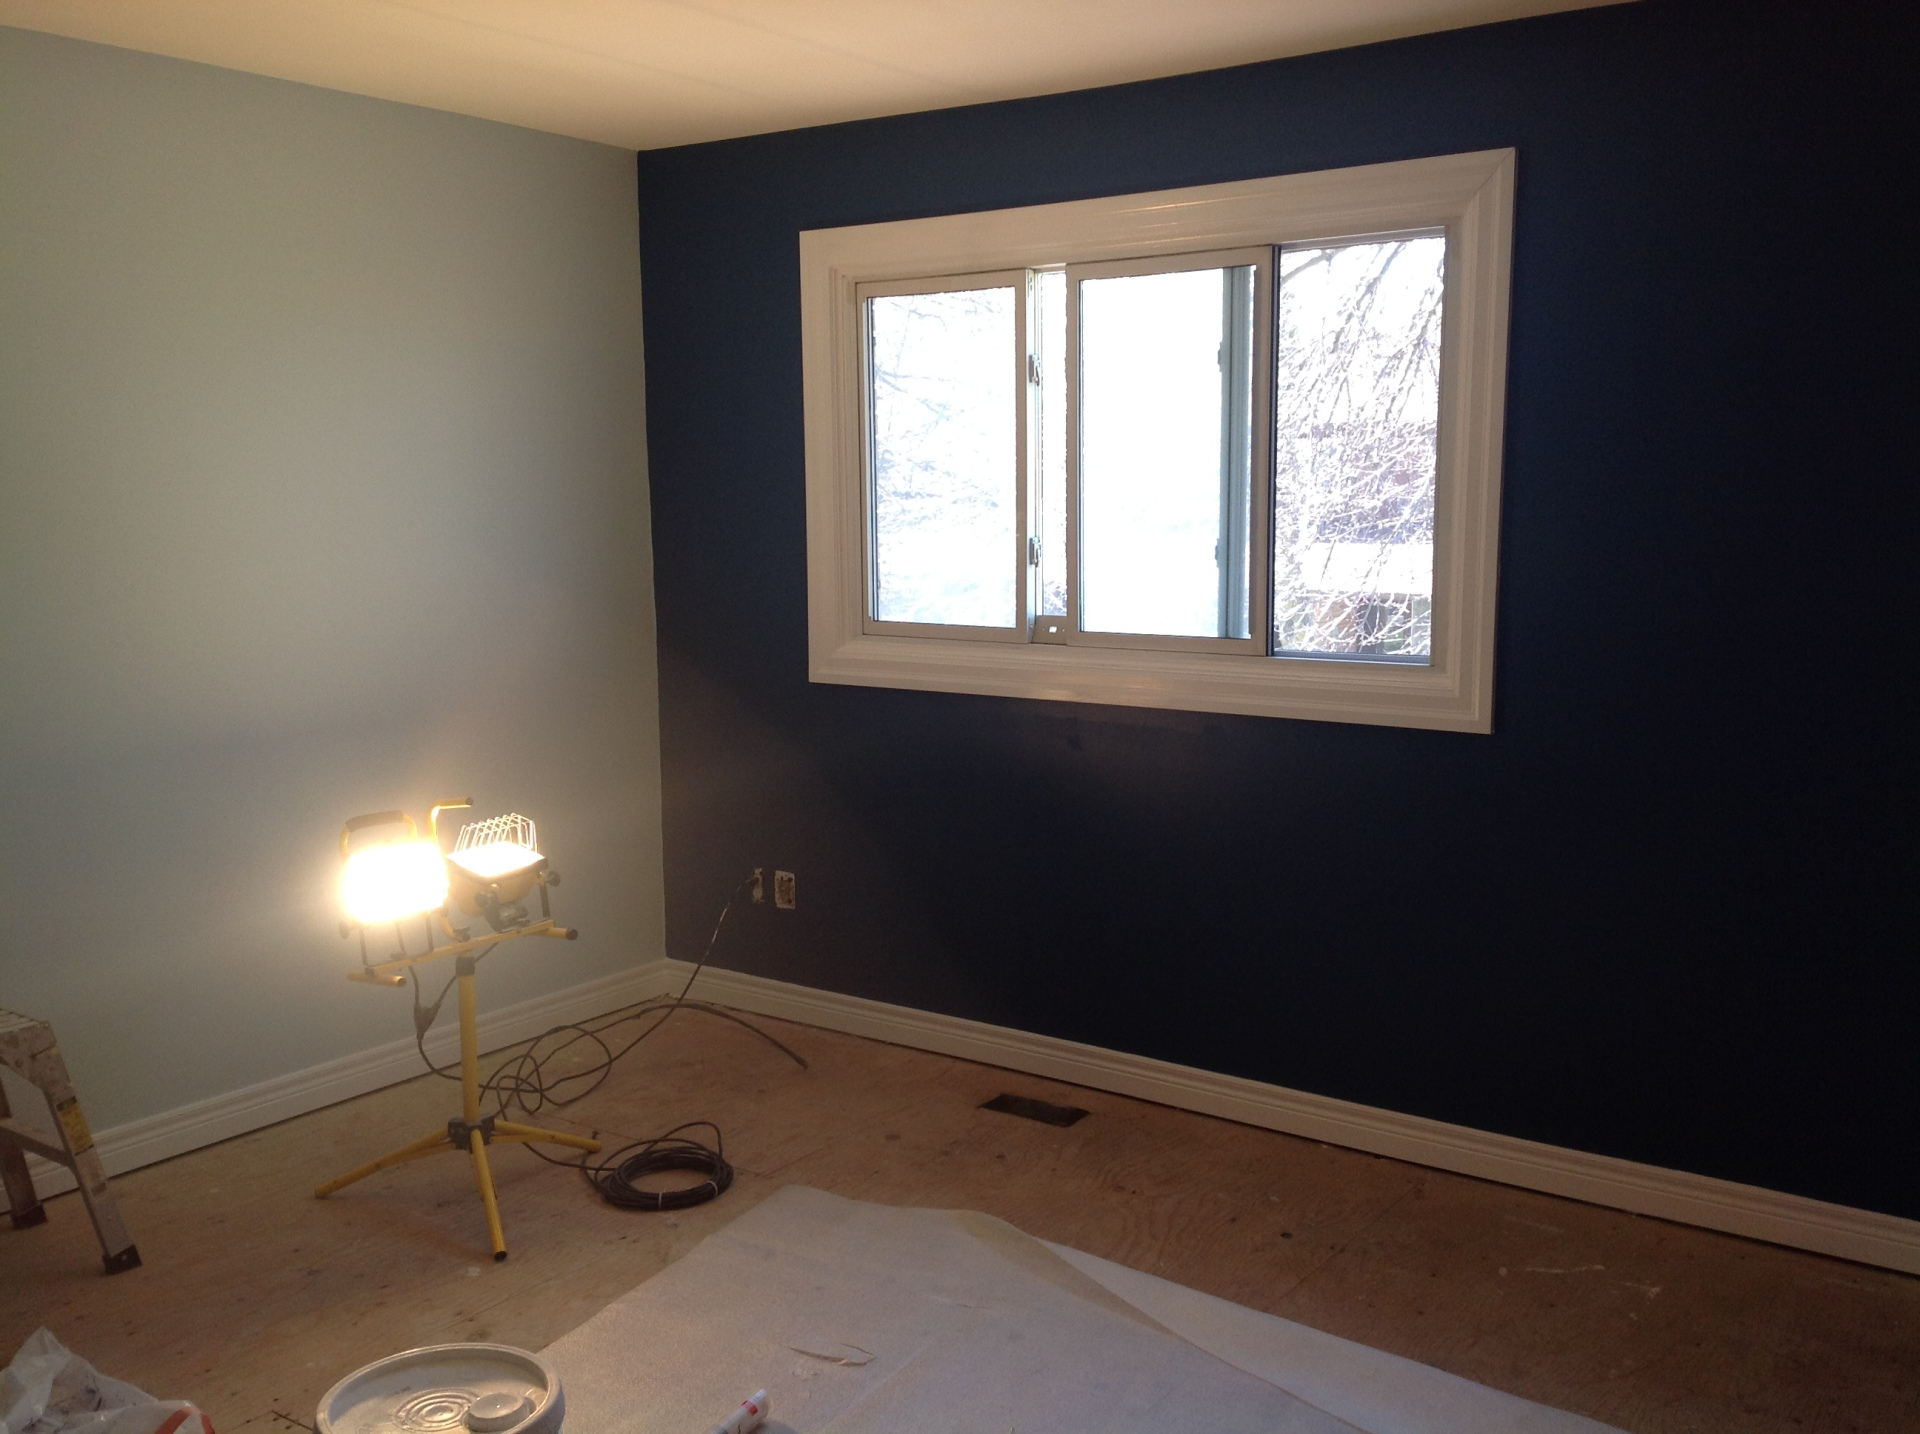 Bedroom with accented wall